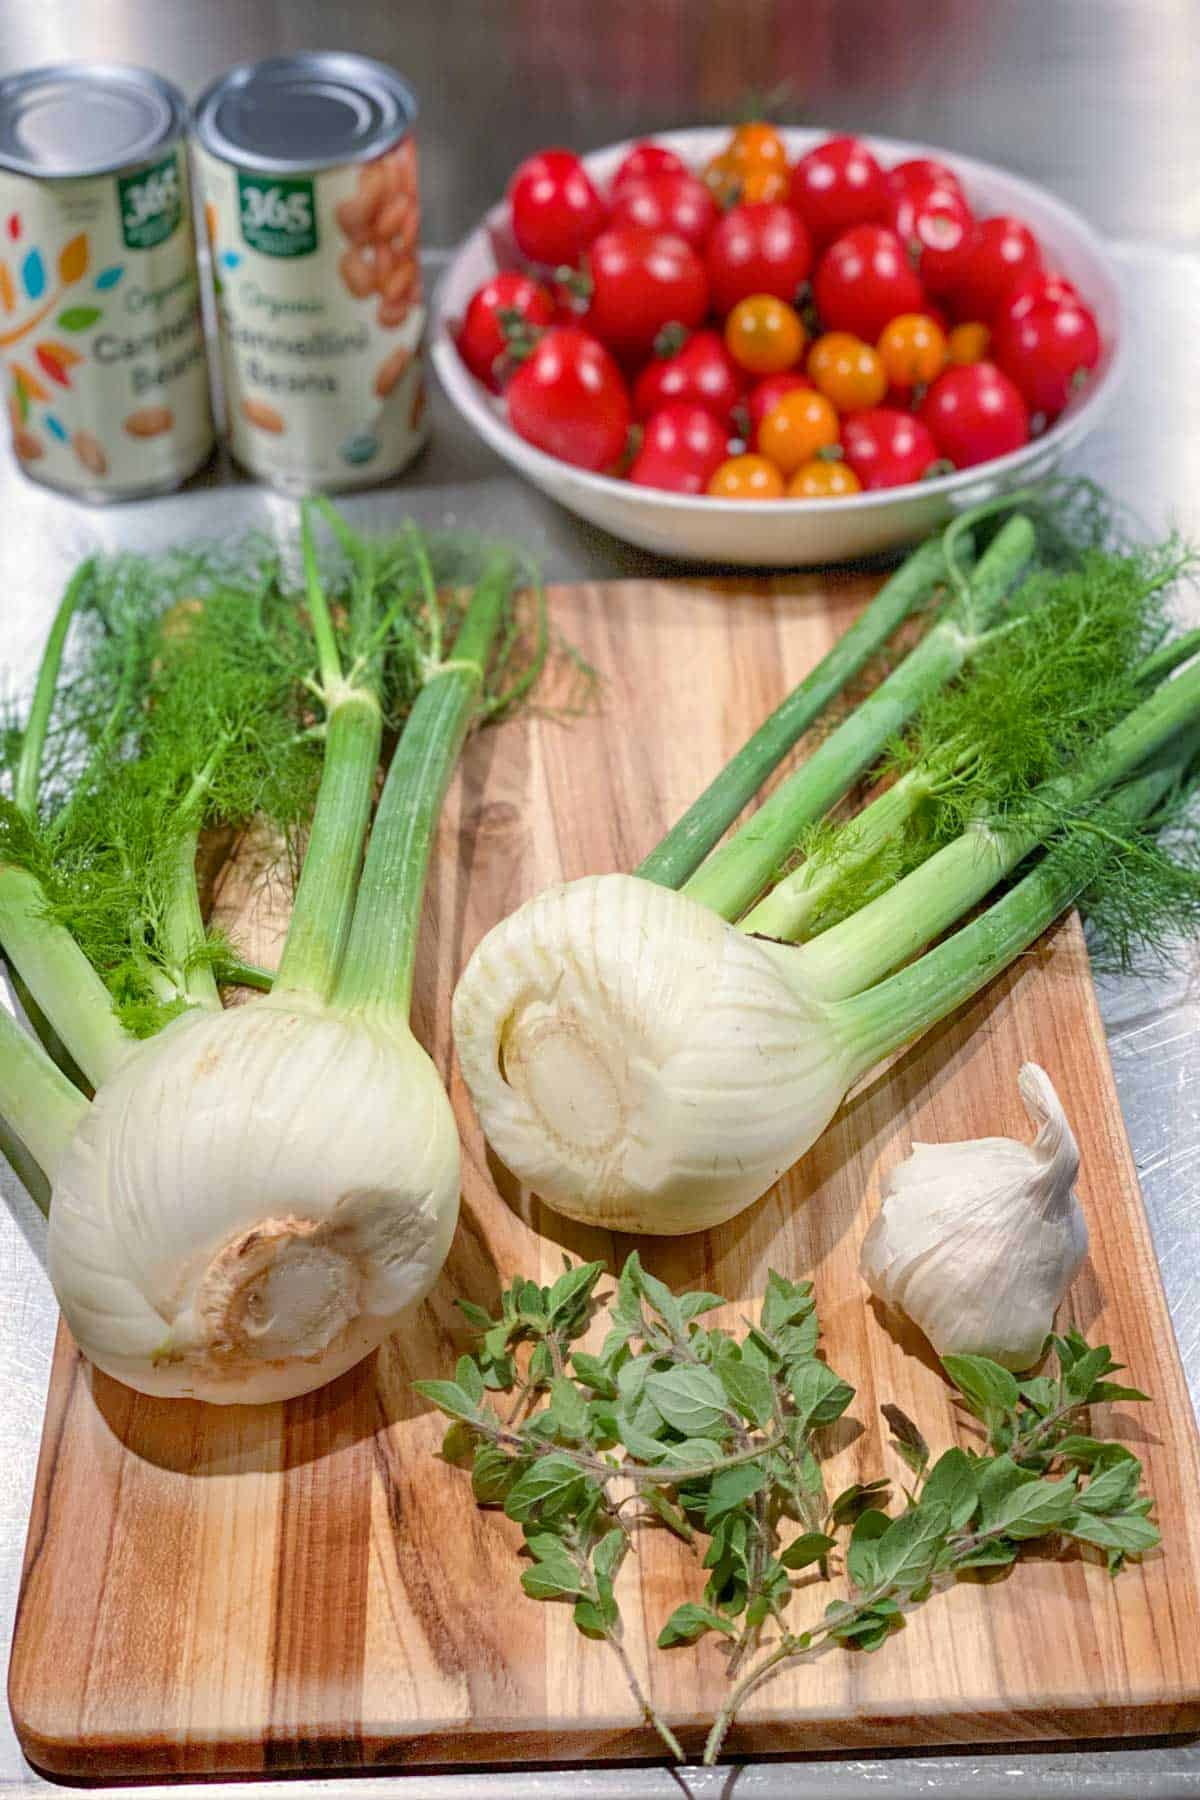 two whole fennel bulbs with fronds on a wooden cutting board with a whole bulb of garlic and several sprigs of fresh oregano, a bowl of cherry tomatoes and two cans of white beans in the background